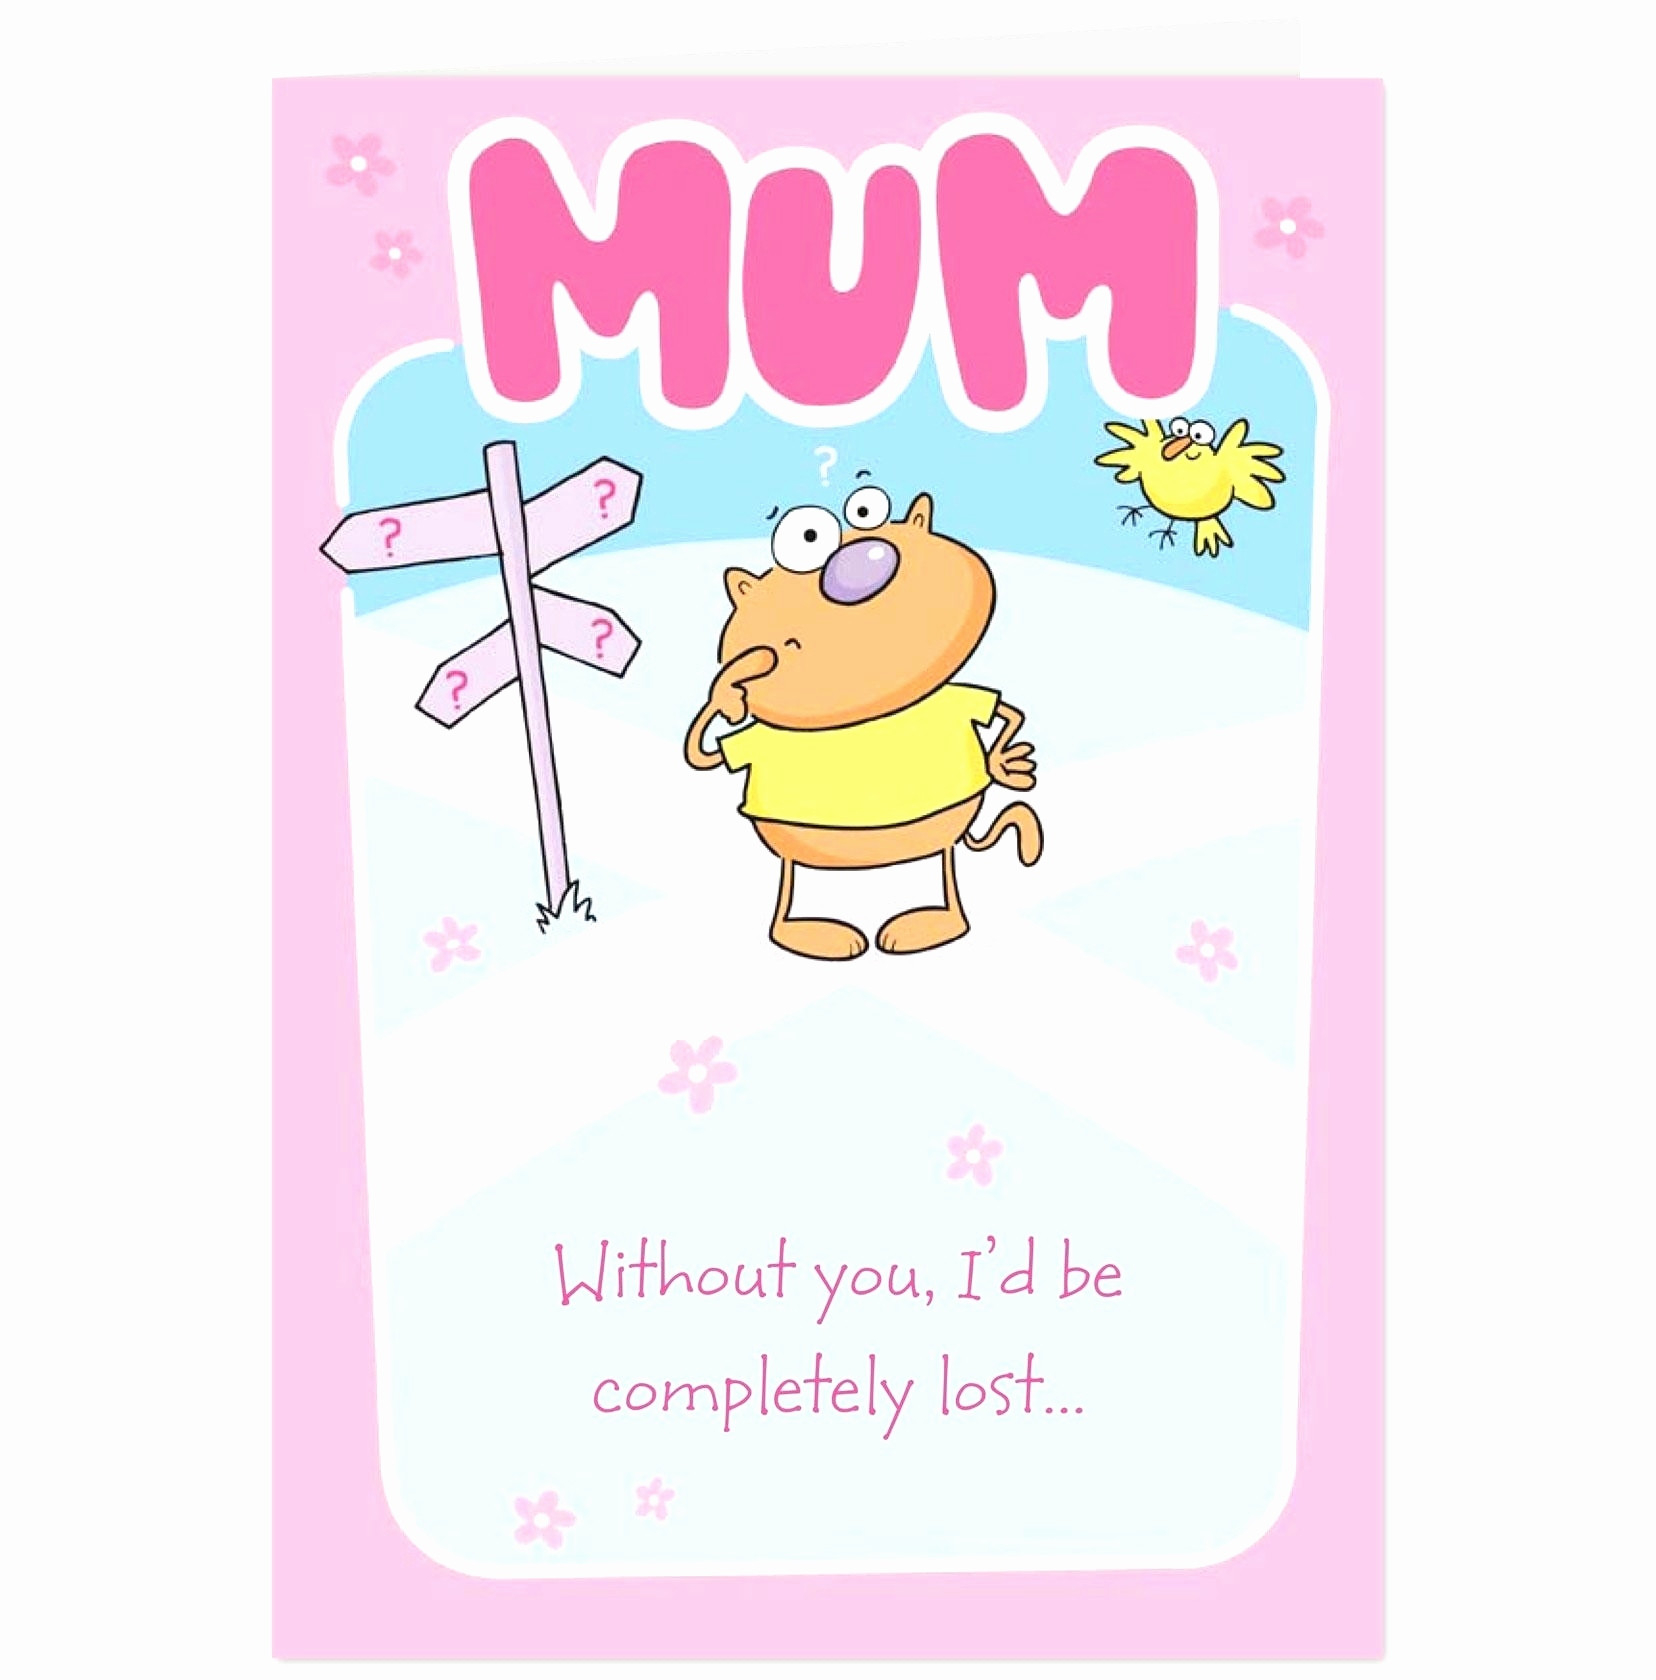 Birthday Card Ideas For Mother Awesome Birthday Cards For Mom Cool Birthday Card Ideas For Mom